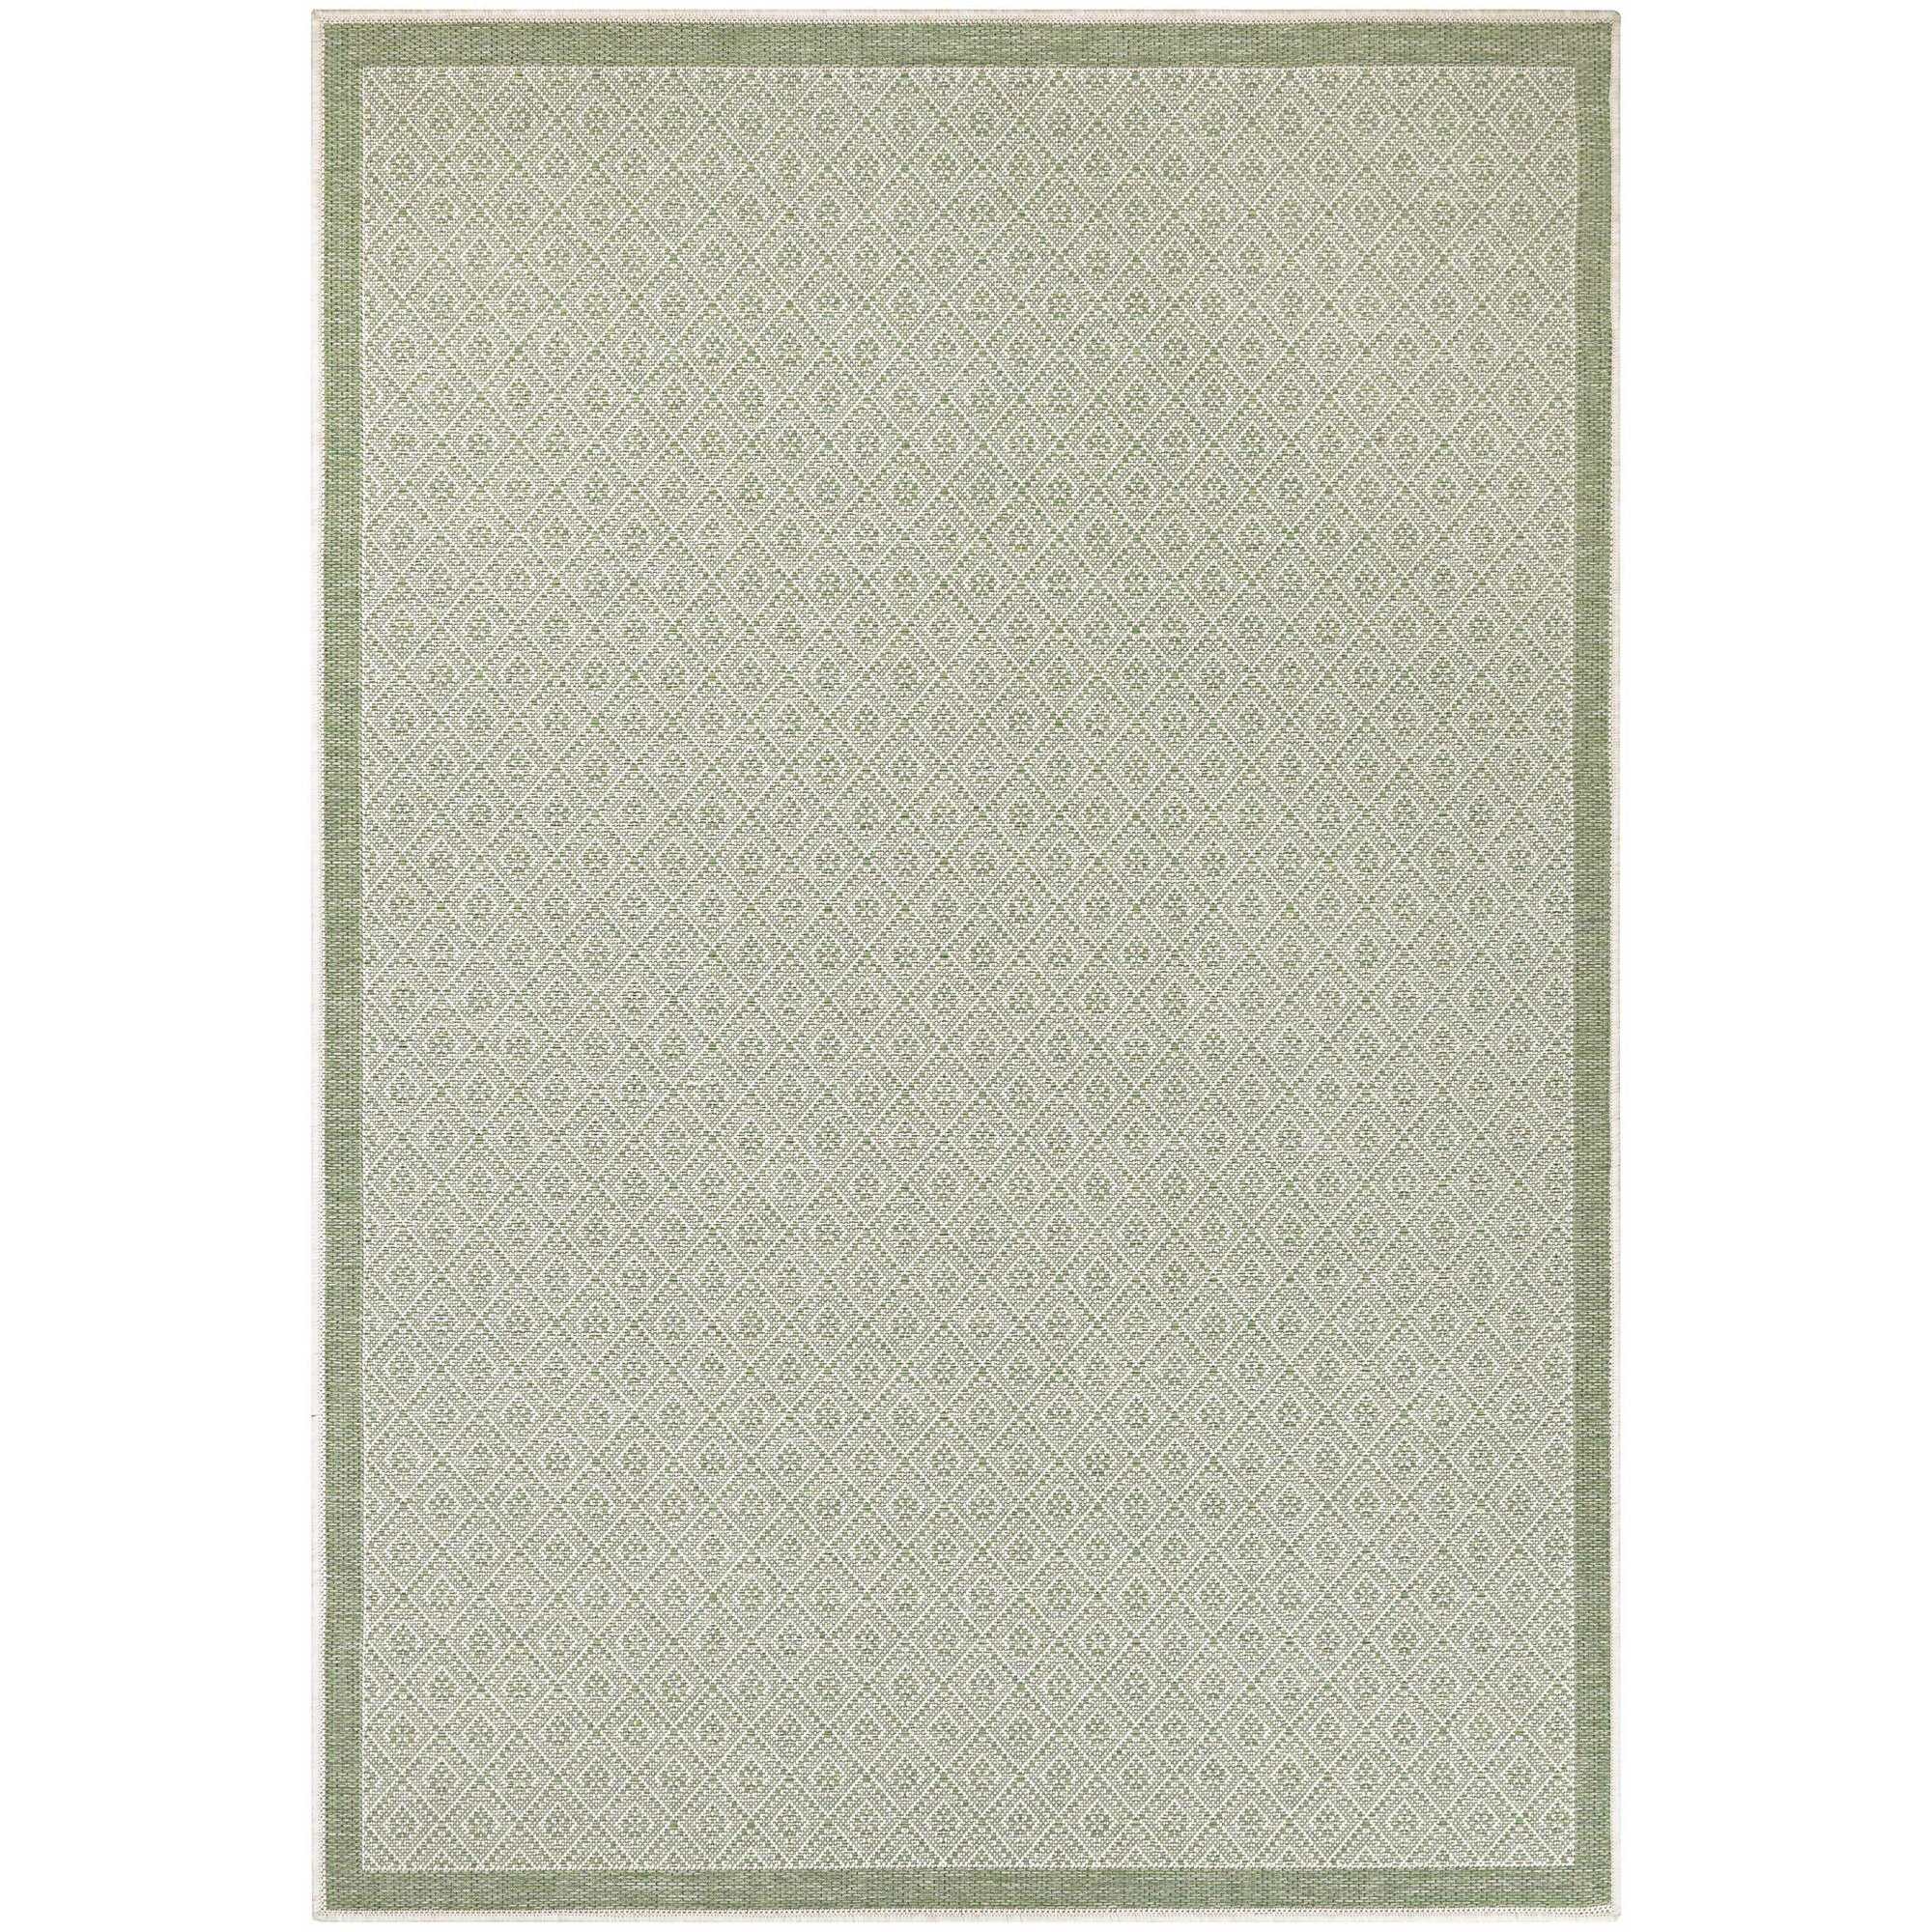 Beachcrest Home Wexford Sea Mist Indoor Outdoor Area Rug